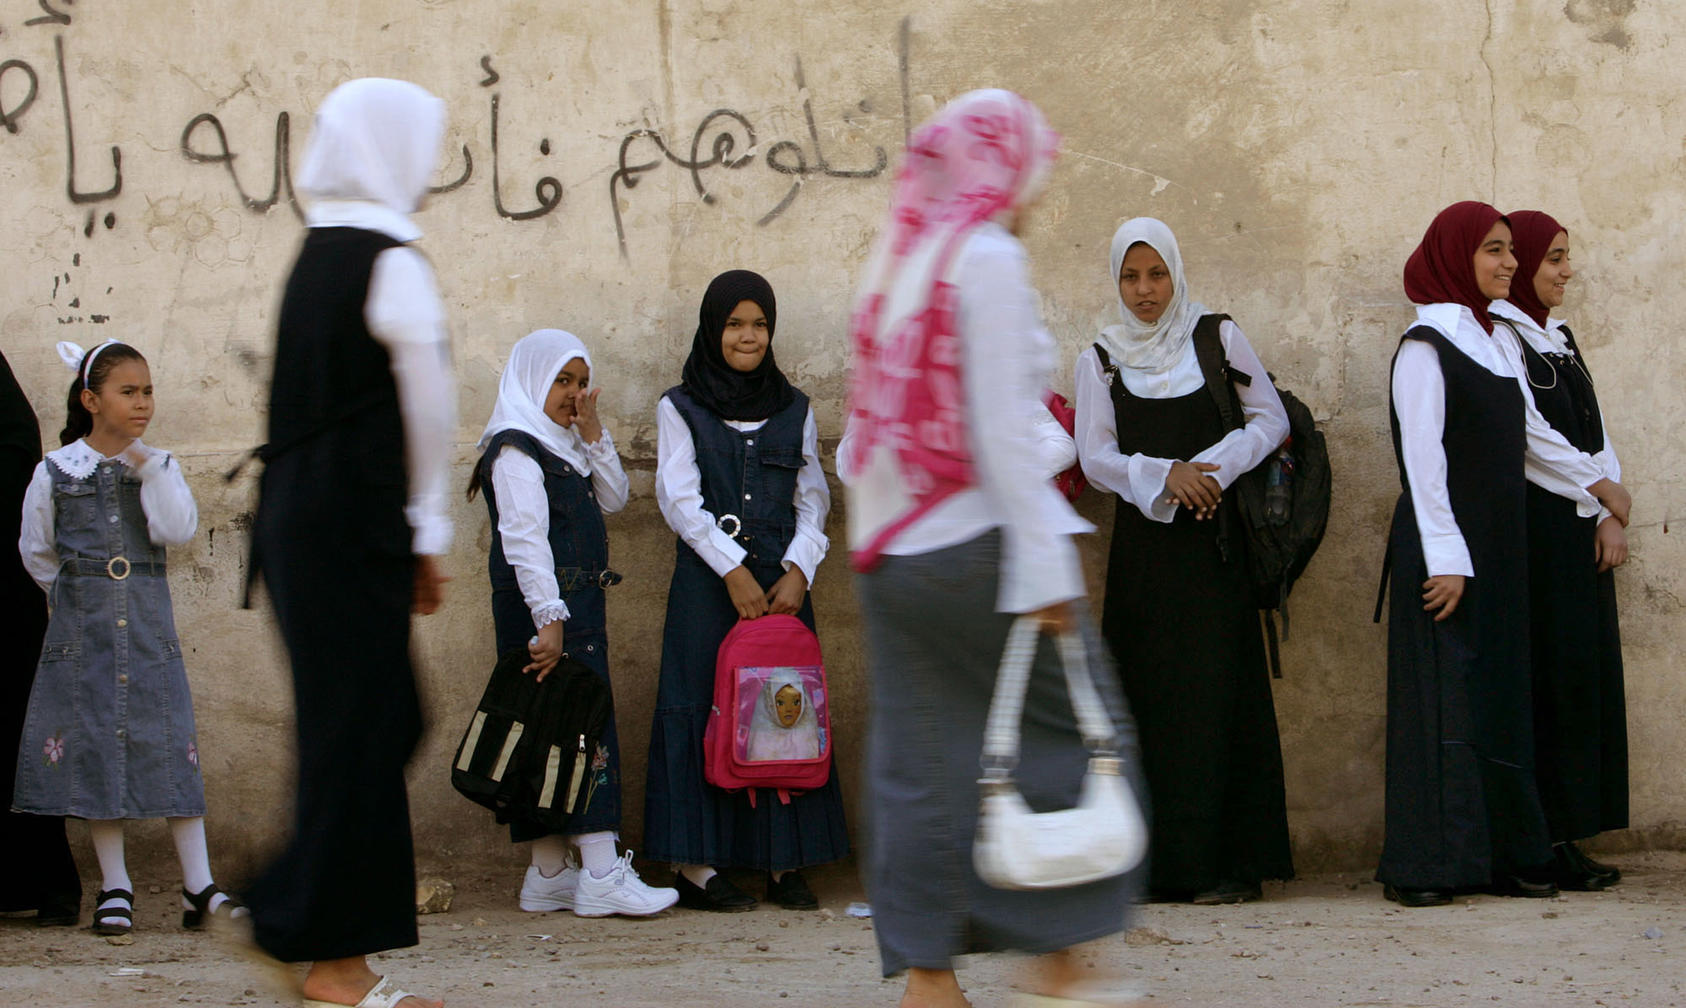 Girls wait to head to their classrooms at a school in Sadr City, the predominantly Shiite neighborhood of Baghdad, Wednesday, Sept. 20, 2006. Six million students nationwide returned to school on Wednesday morning after three months of summer vacations, according to Iraqi ministry of education.